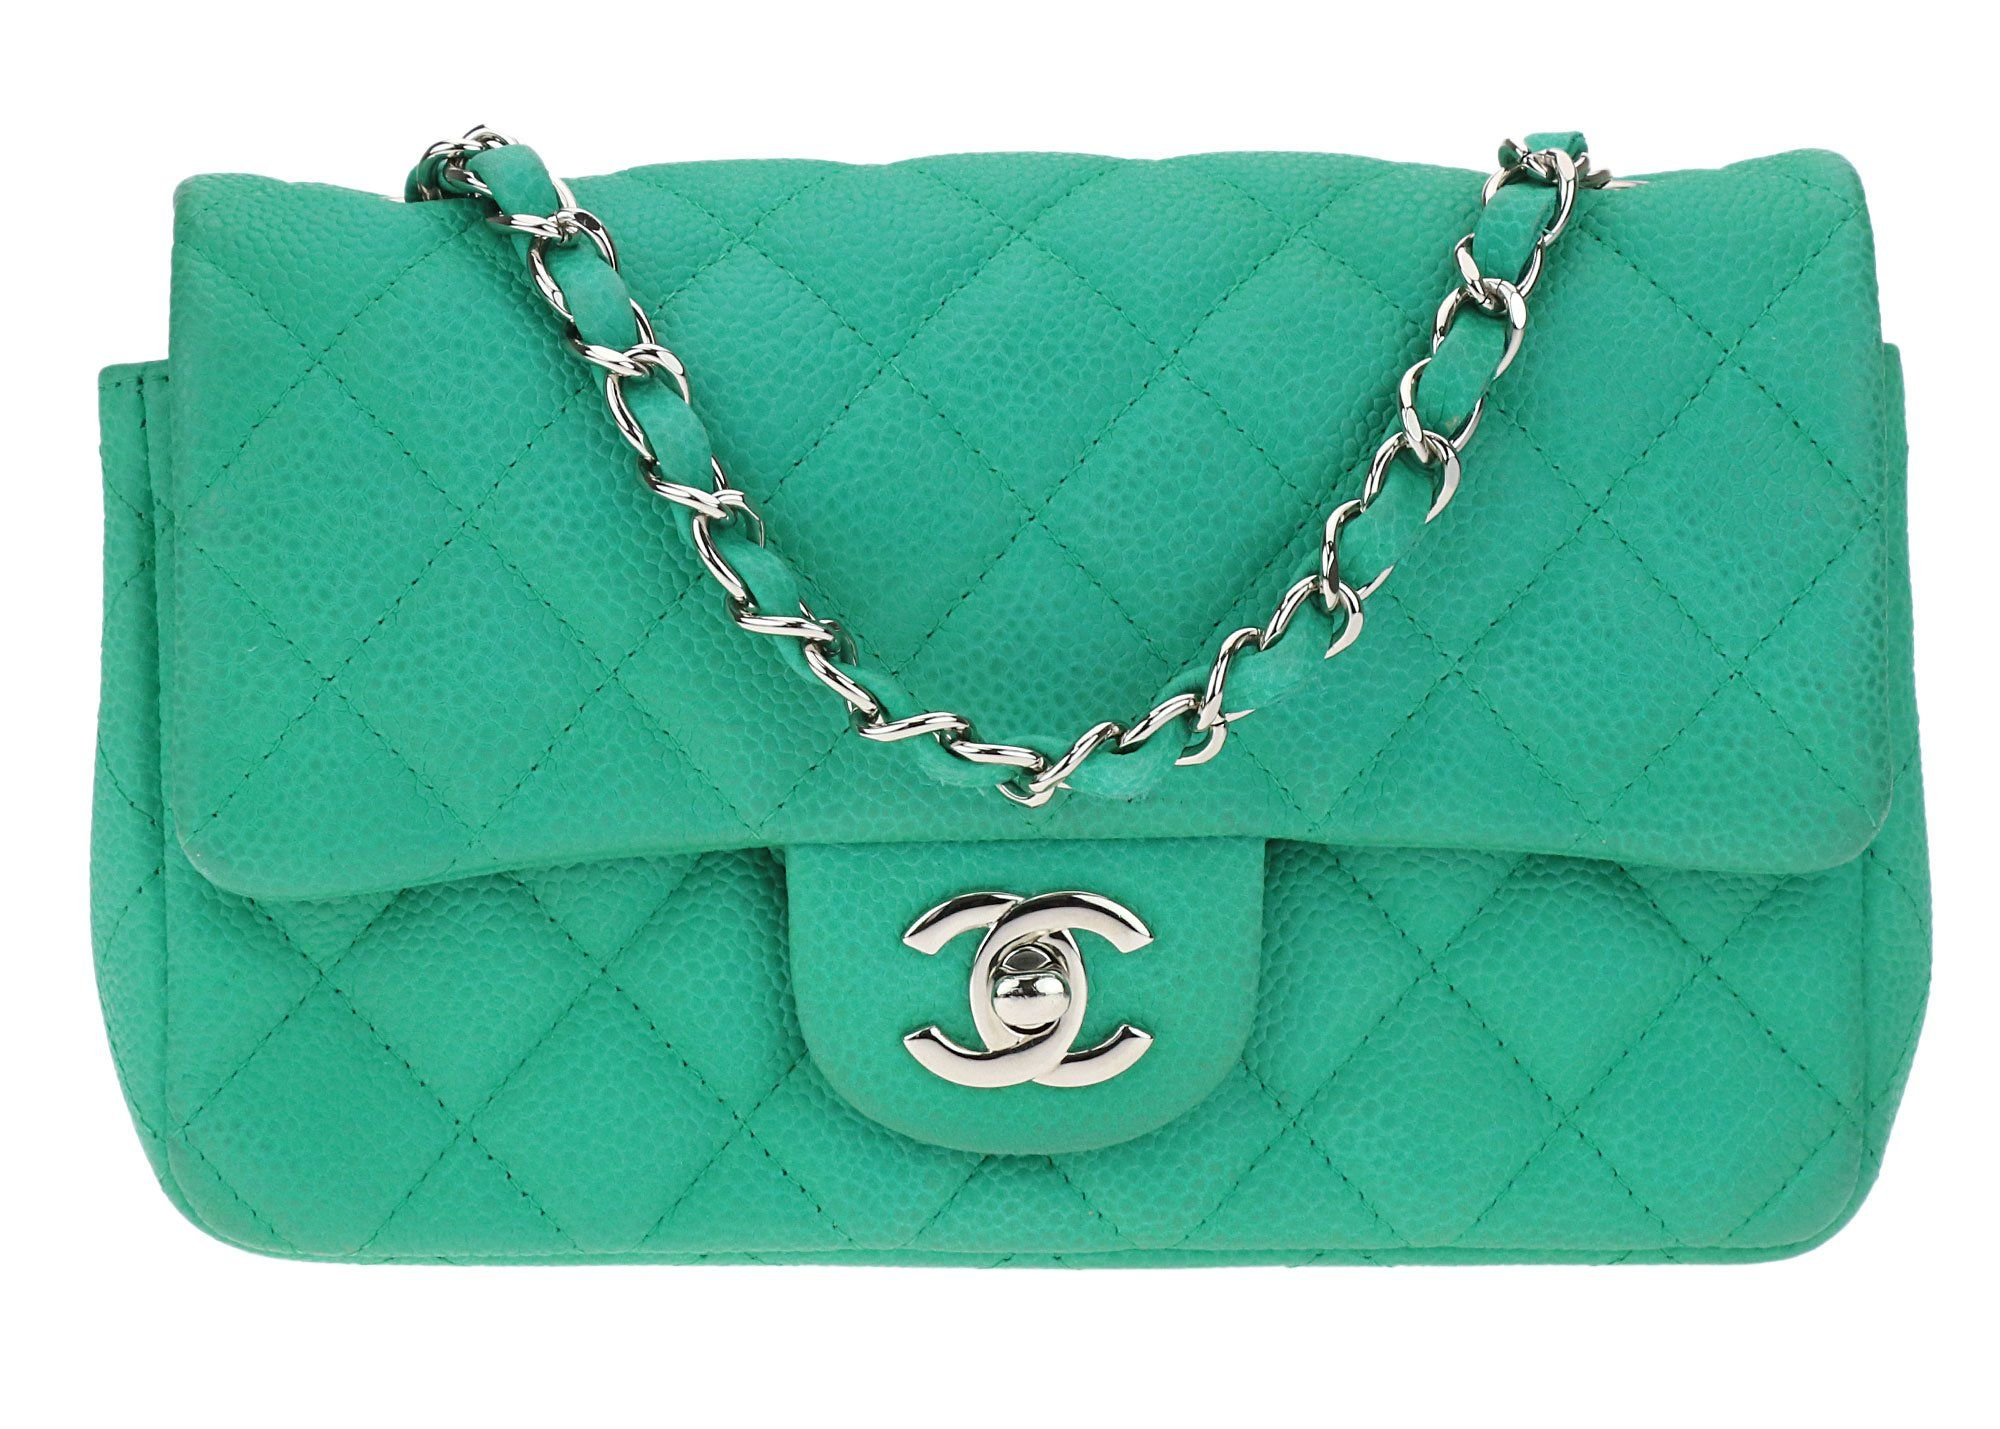 d0169daa1519 Chanel Iridescent Caviar Quilted Square Rectangular Mini Flap Green Bag SHW